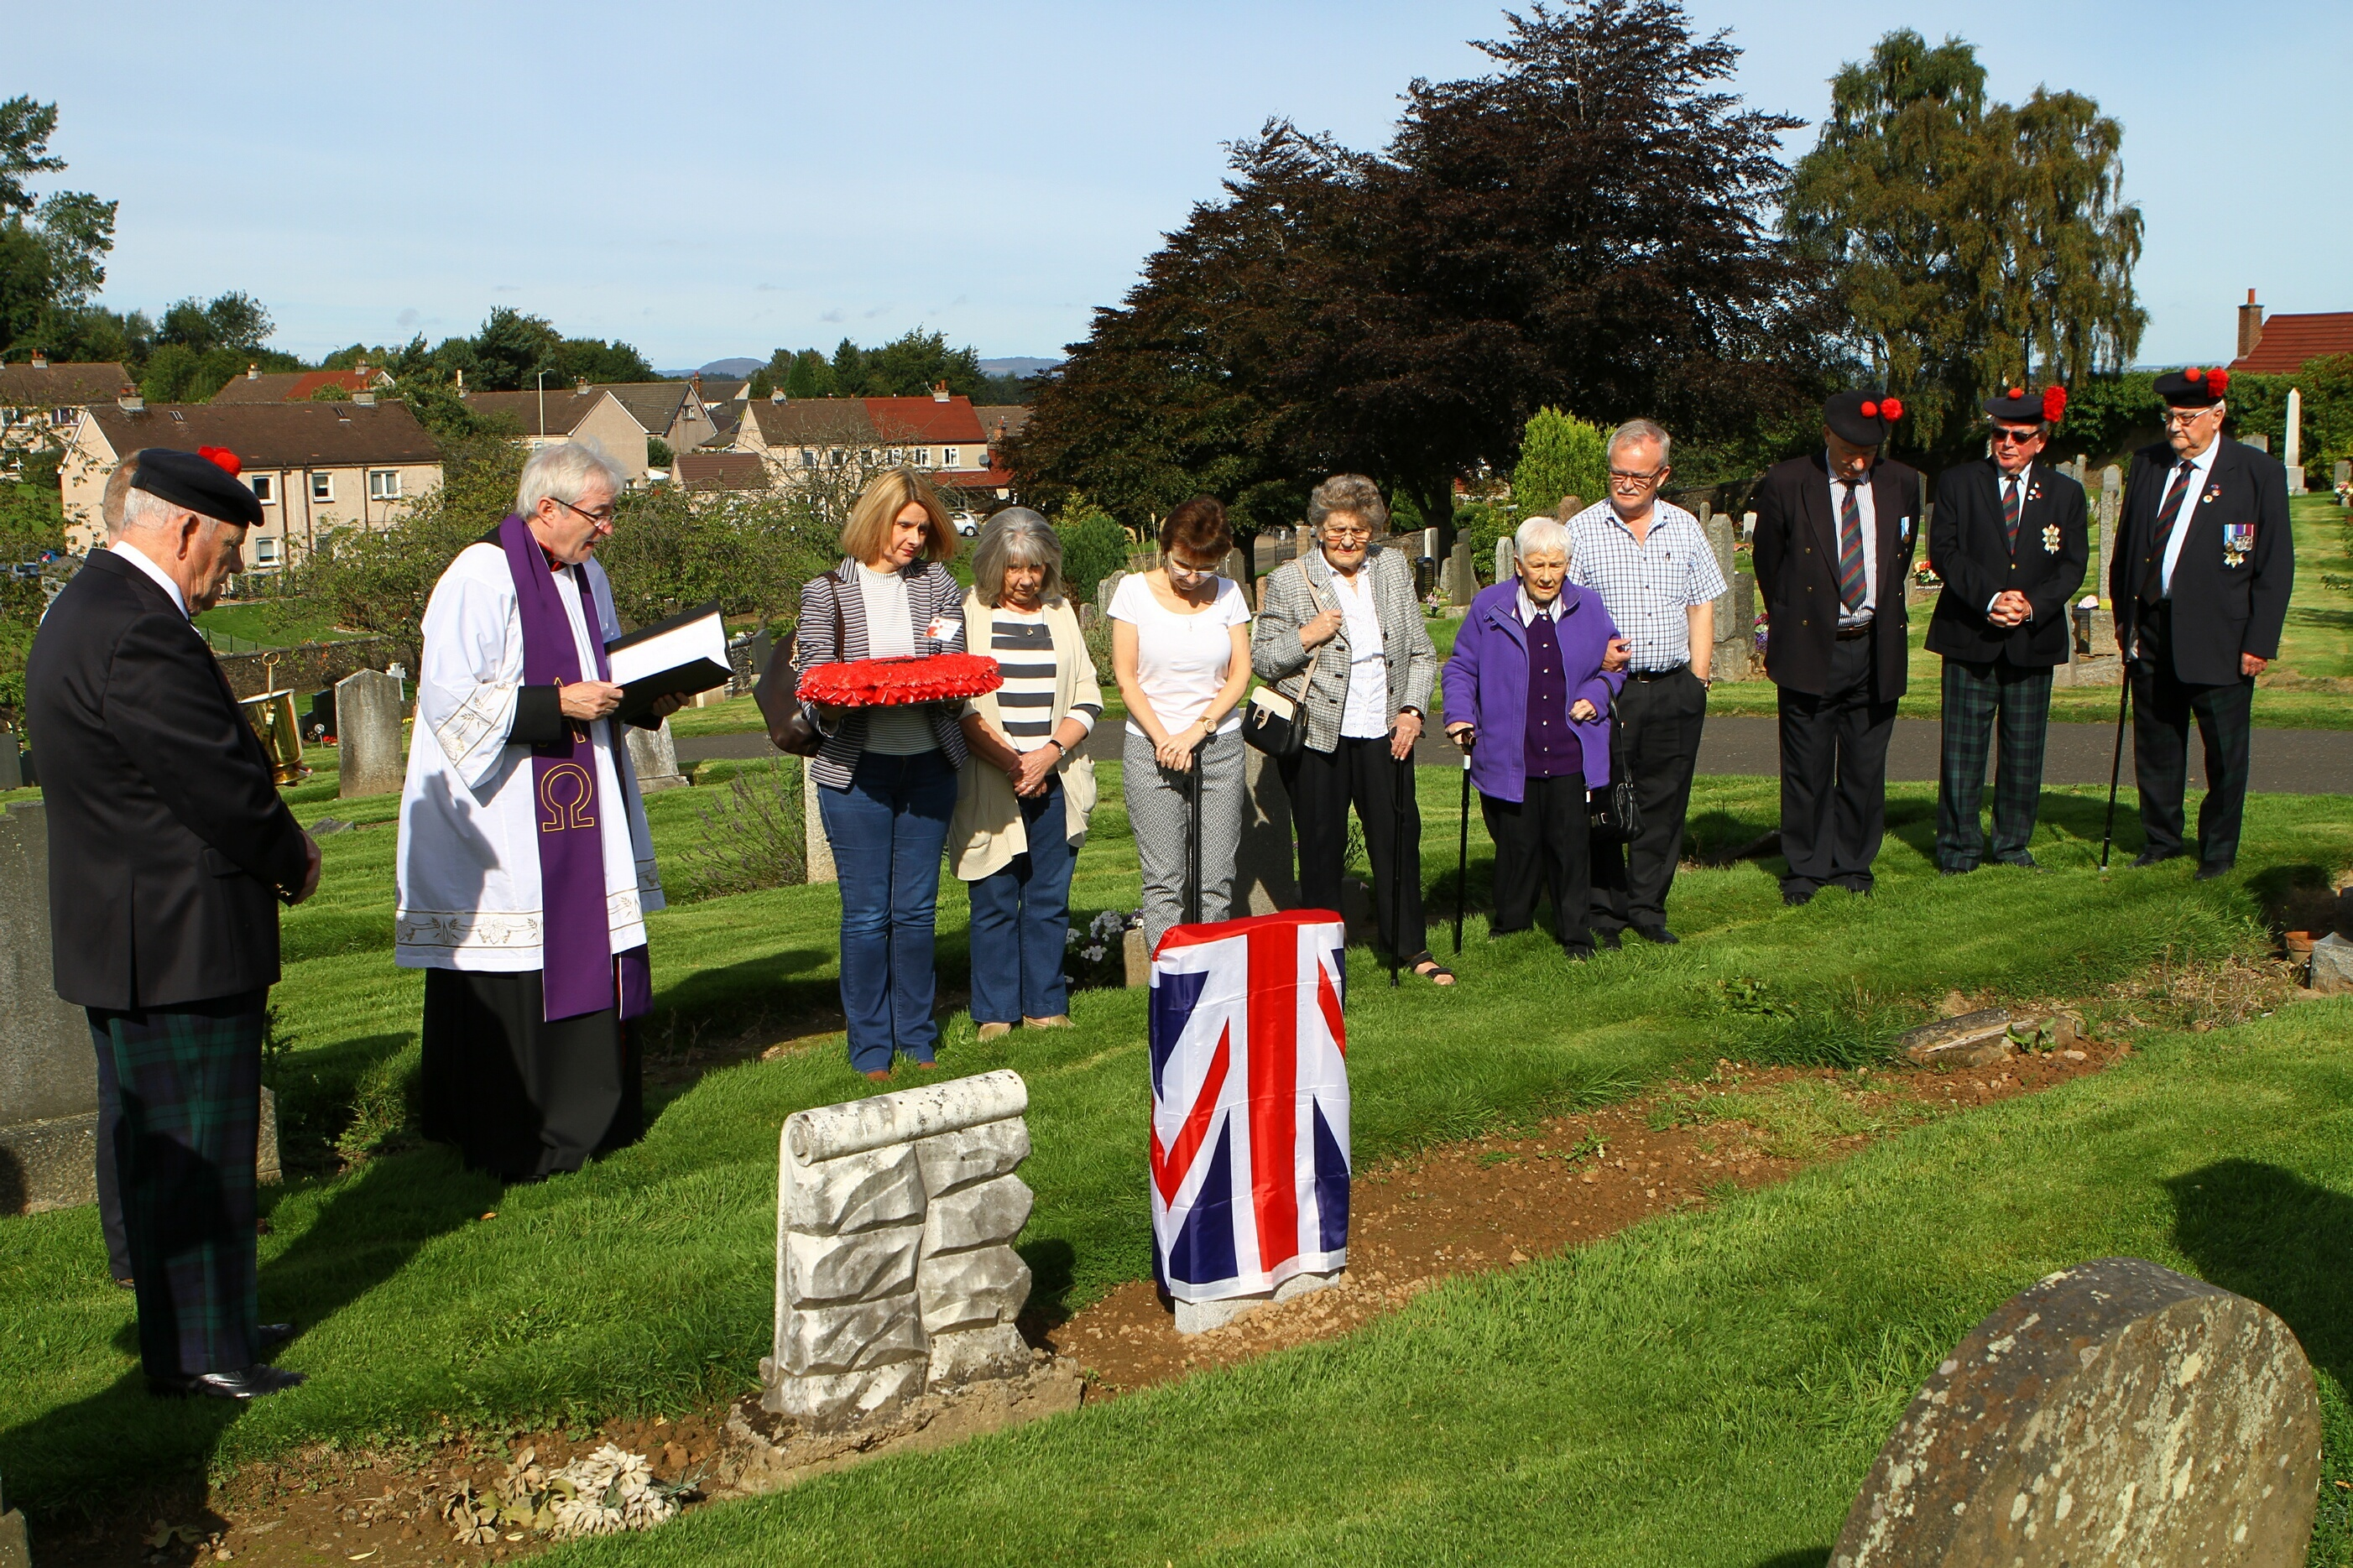 The ceremony at Wellshill Cemetery.